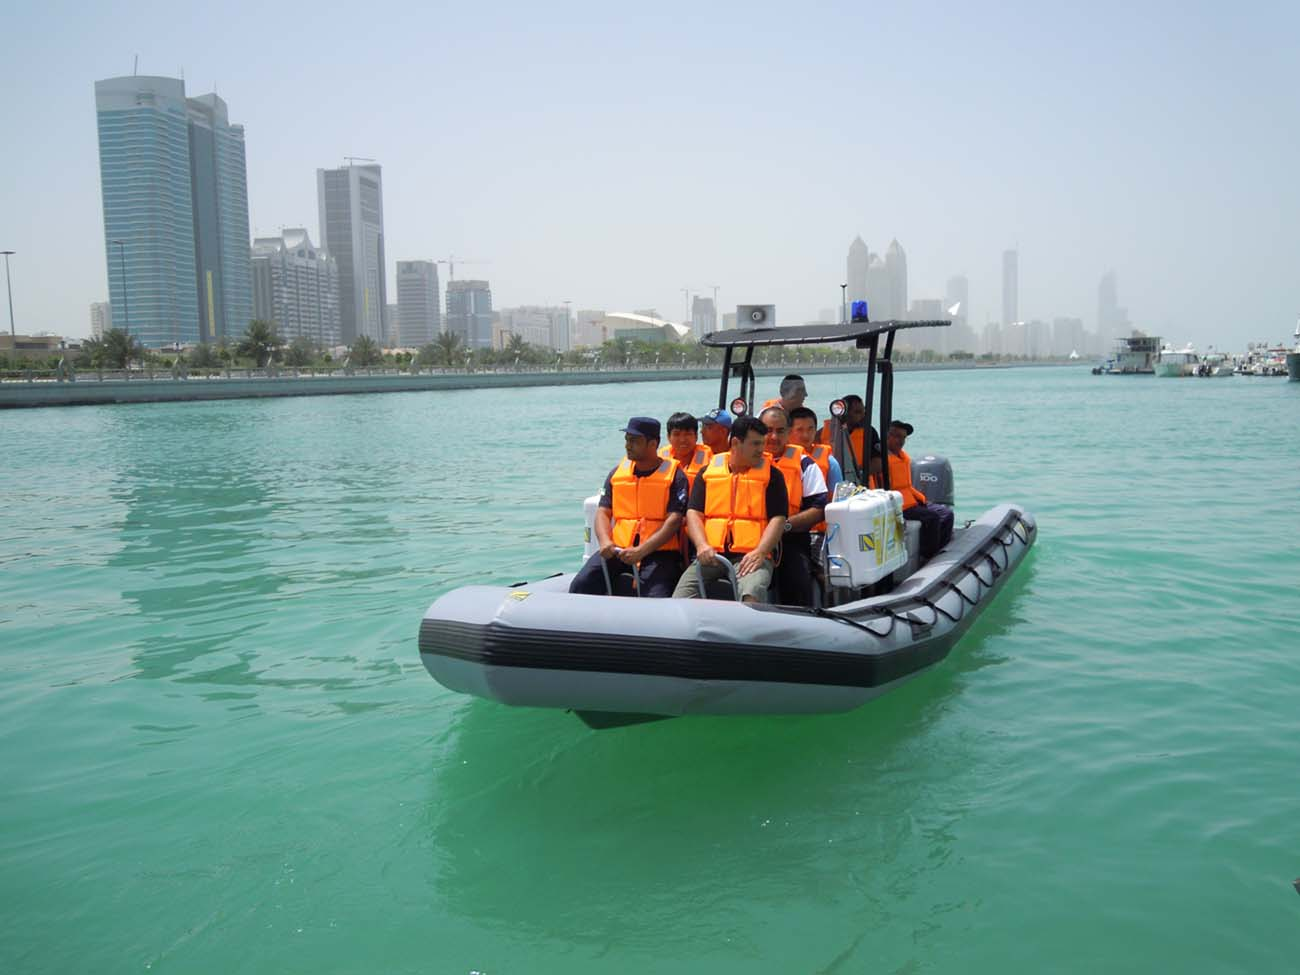 Zodiac - Training the Abu Dhabi airport rescue boat crews